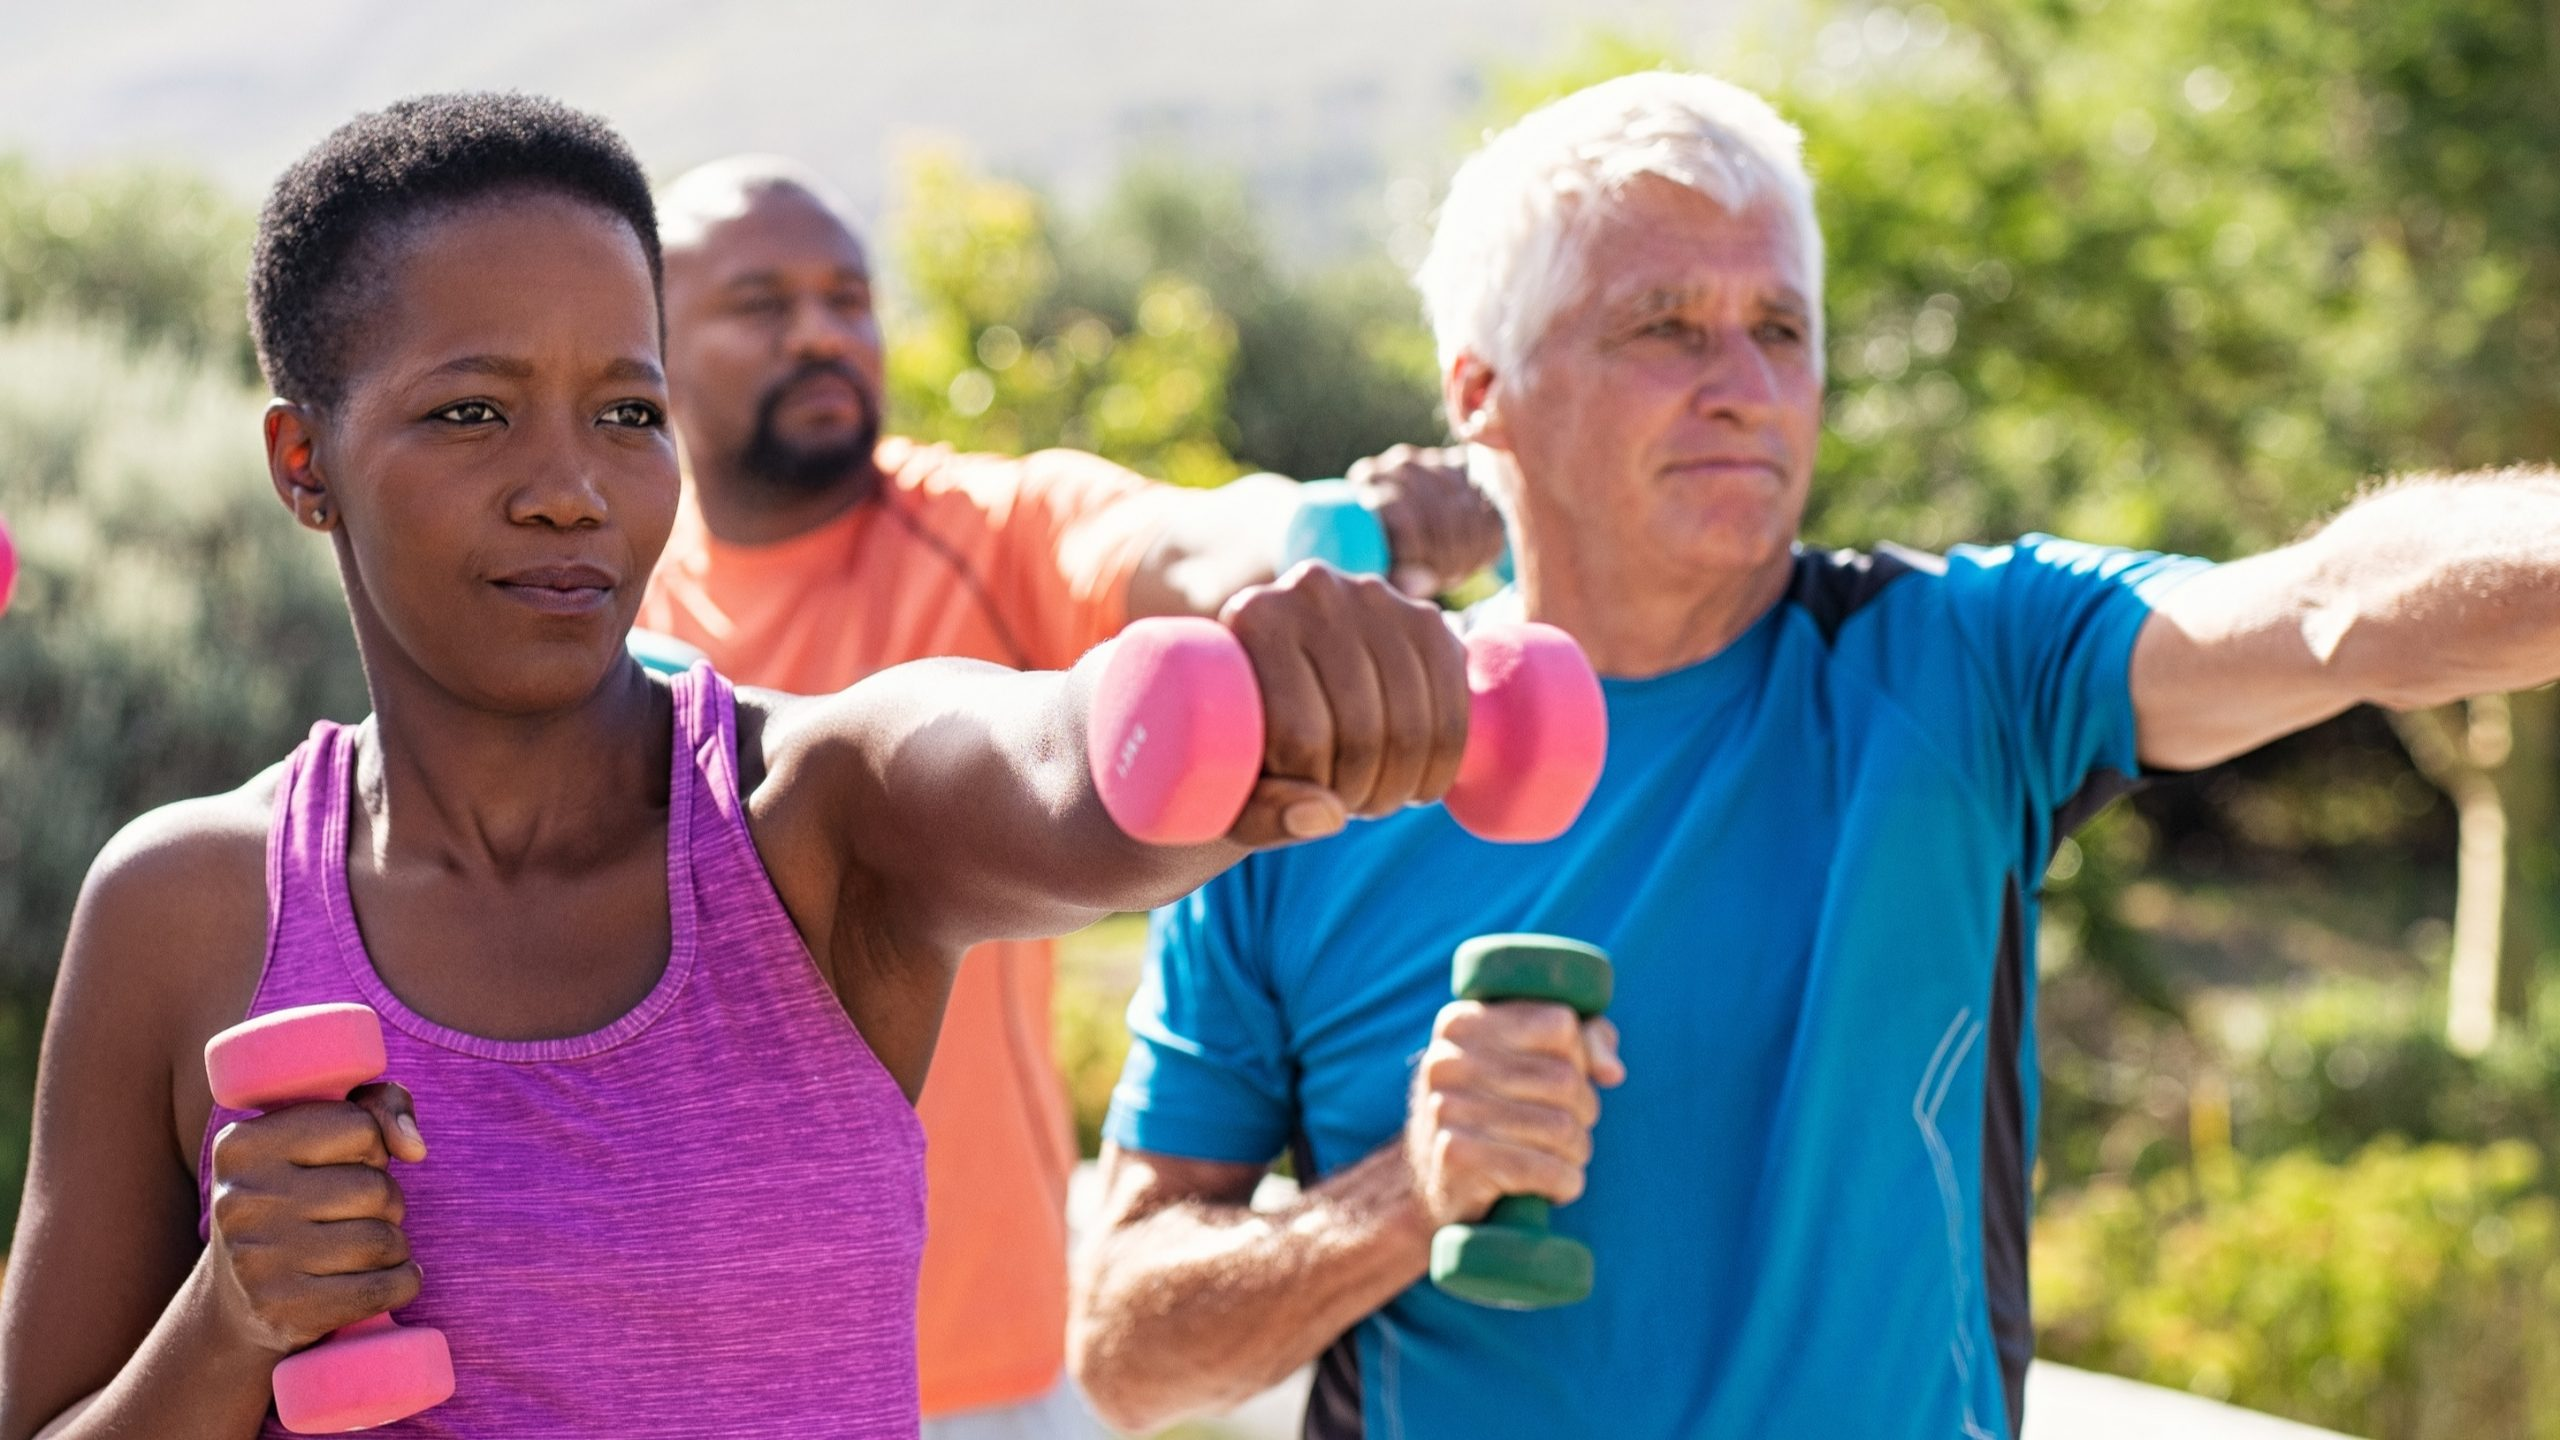 Higher Fitness Level Can Determine Longer Lifespan after Age 70